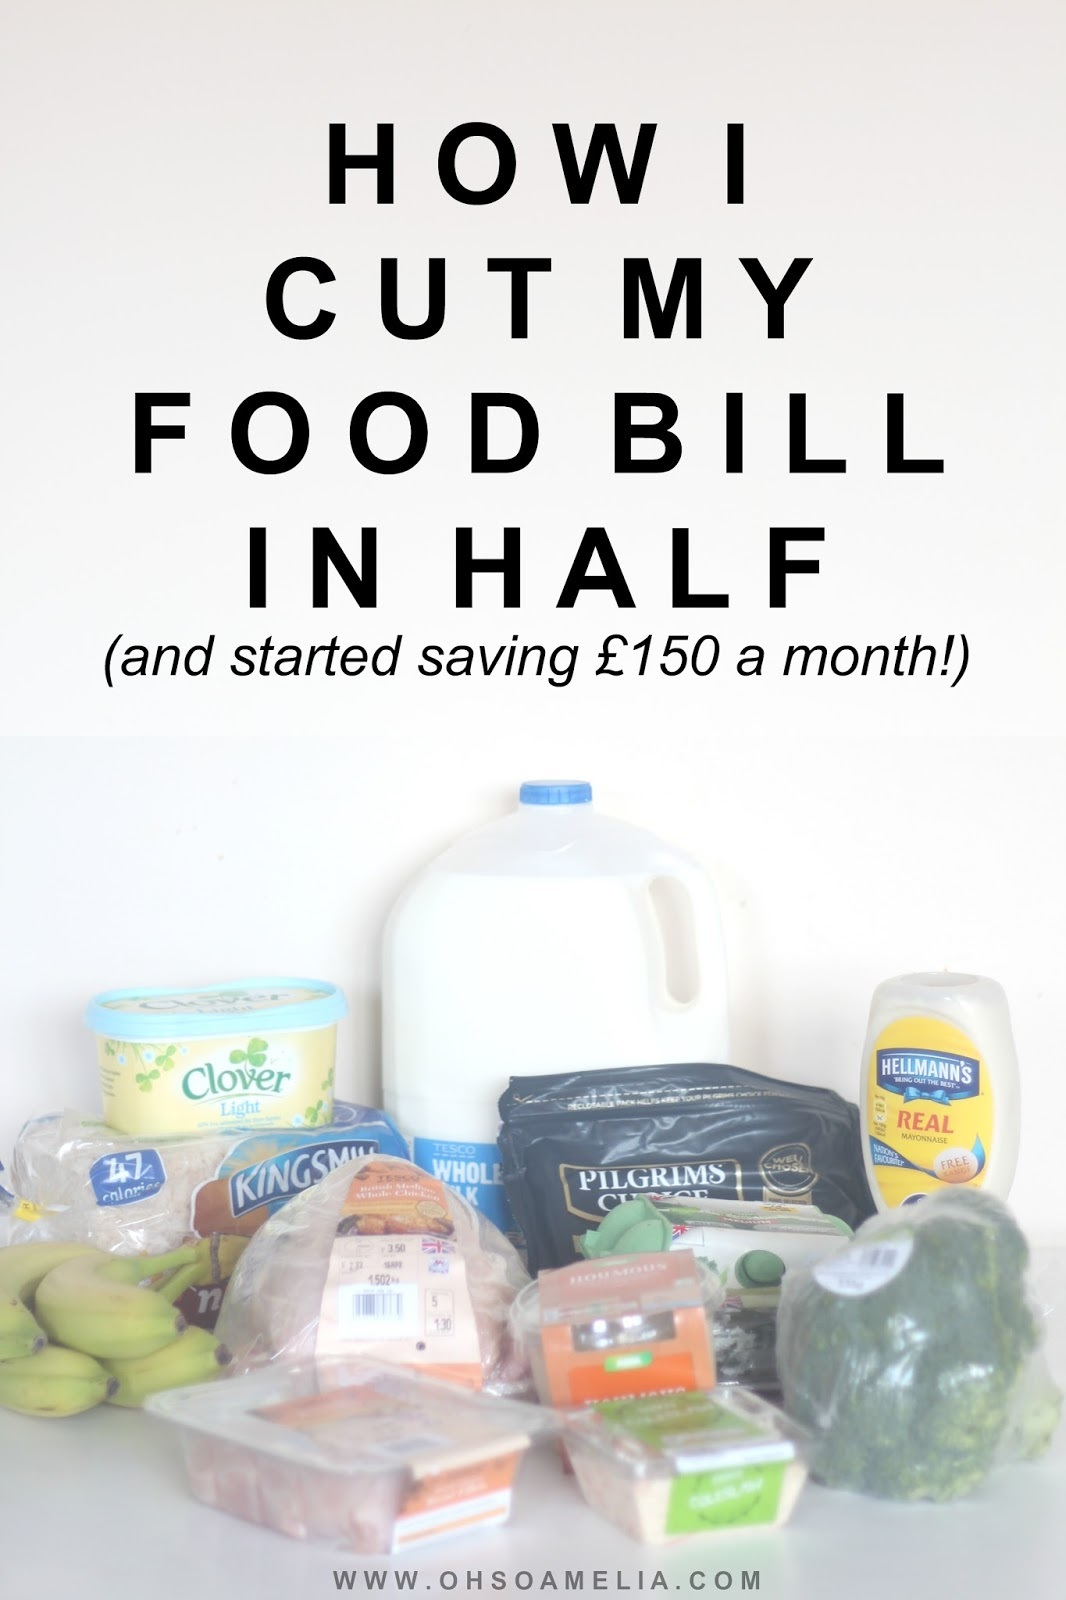 How I Cut My Food Bill In Half And Started Saving £150 A Month